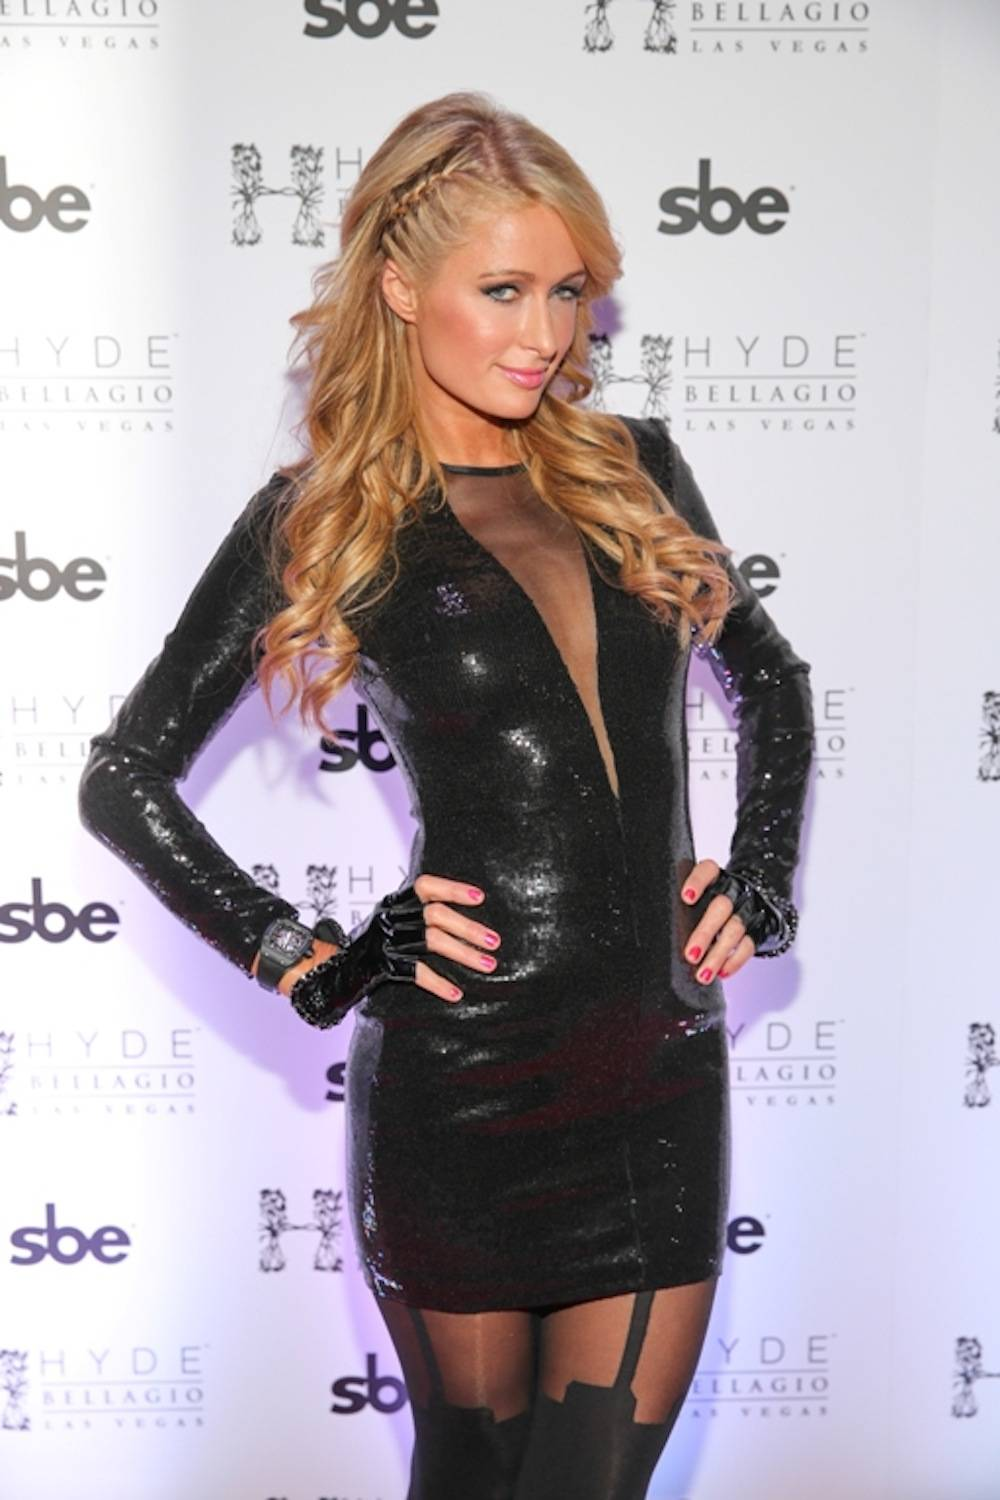 Paris Hilton Rings in 2014 at Hyde Bellagio, Las Vegas, 12.31.13